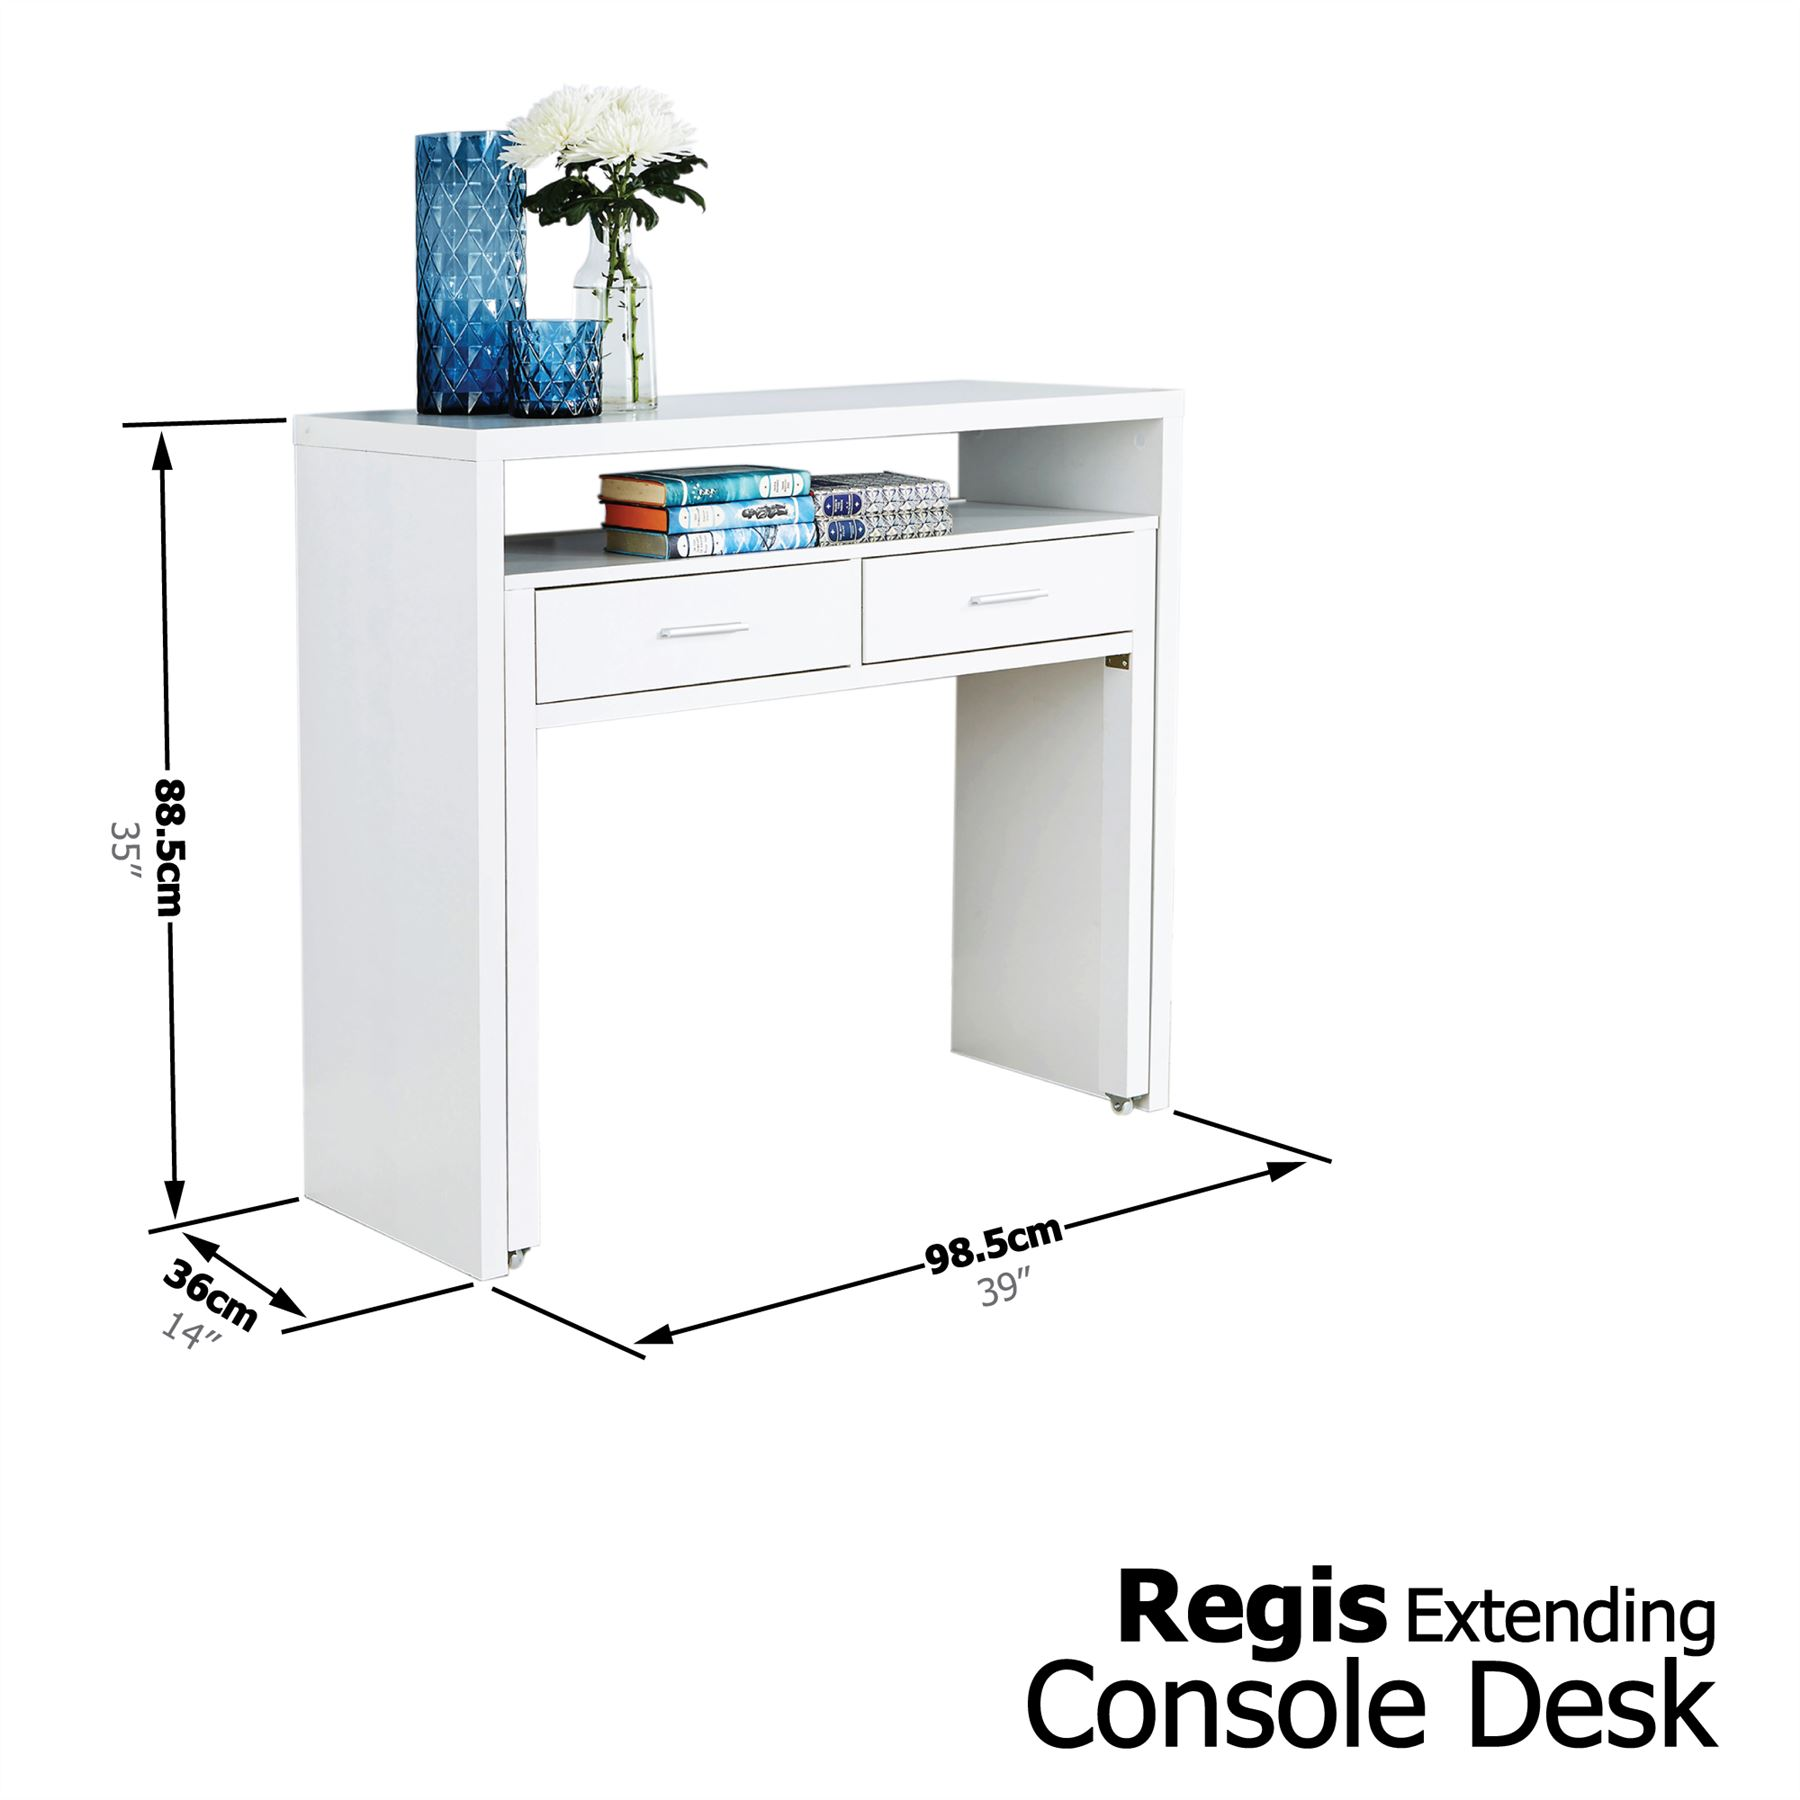 regis extending console table study computer desk 2 drawers retractable shelf oak f00145 ebay. Black Bedroom Furniture Sets. Home Design Ideas